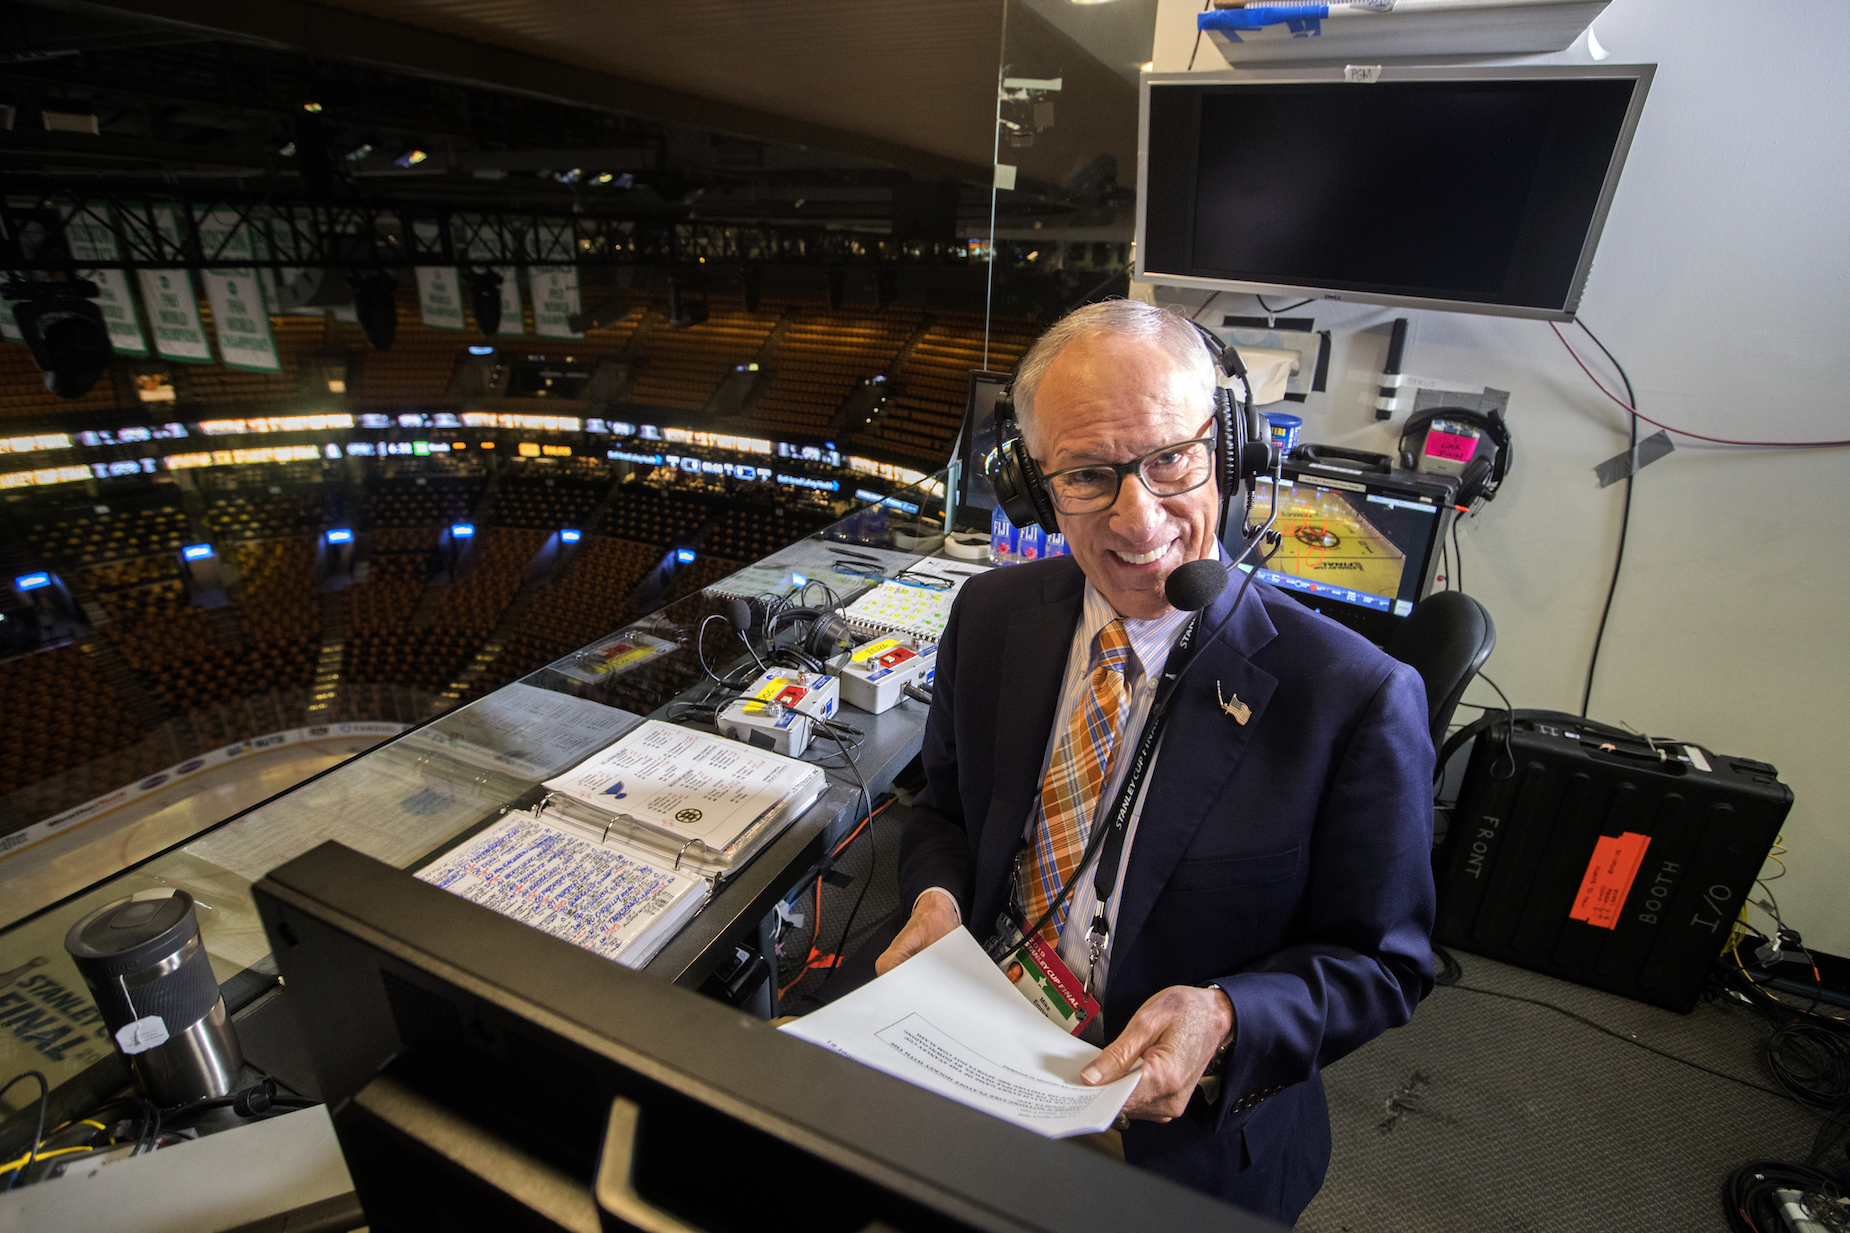 Mike 'Doc' Emrick built up an impressive net worth before retiring from sports broadcasting.